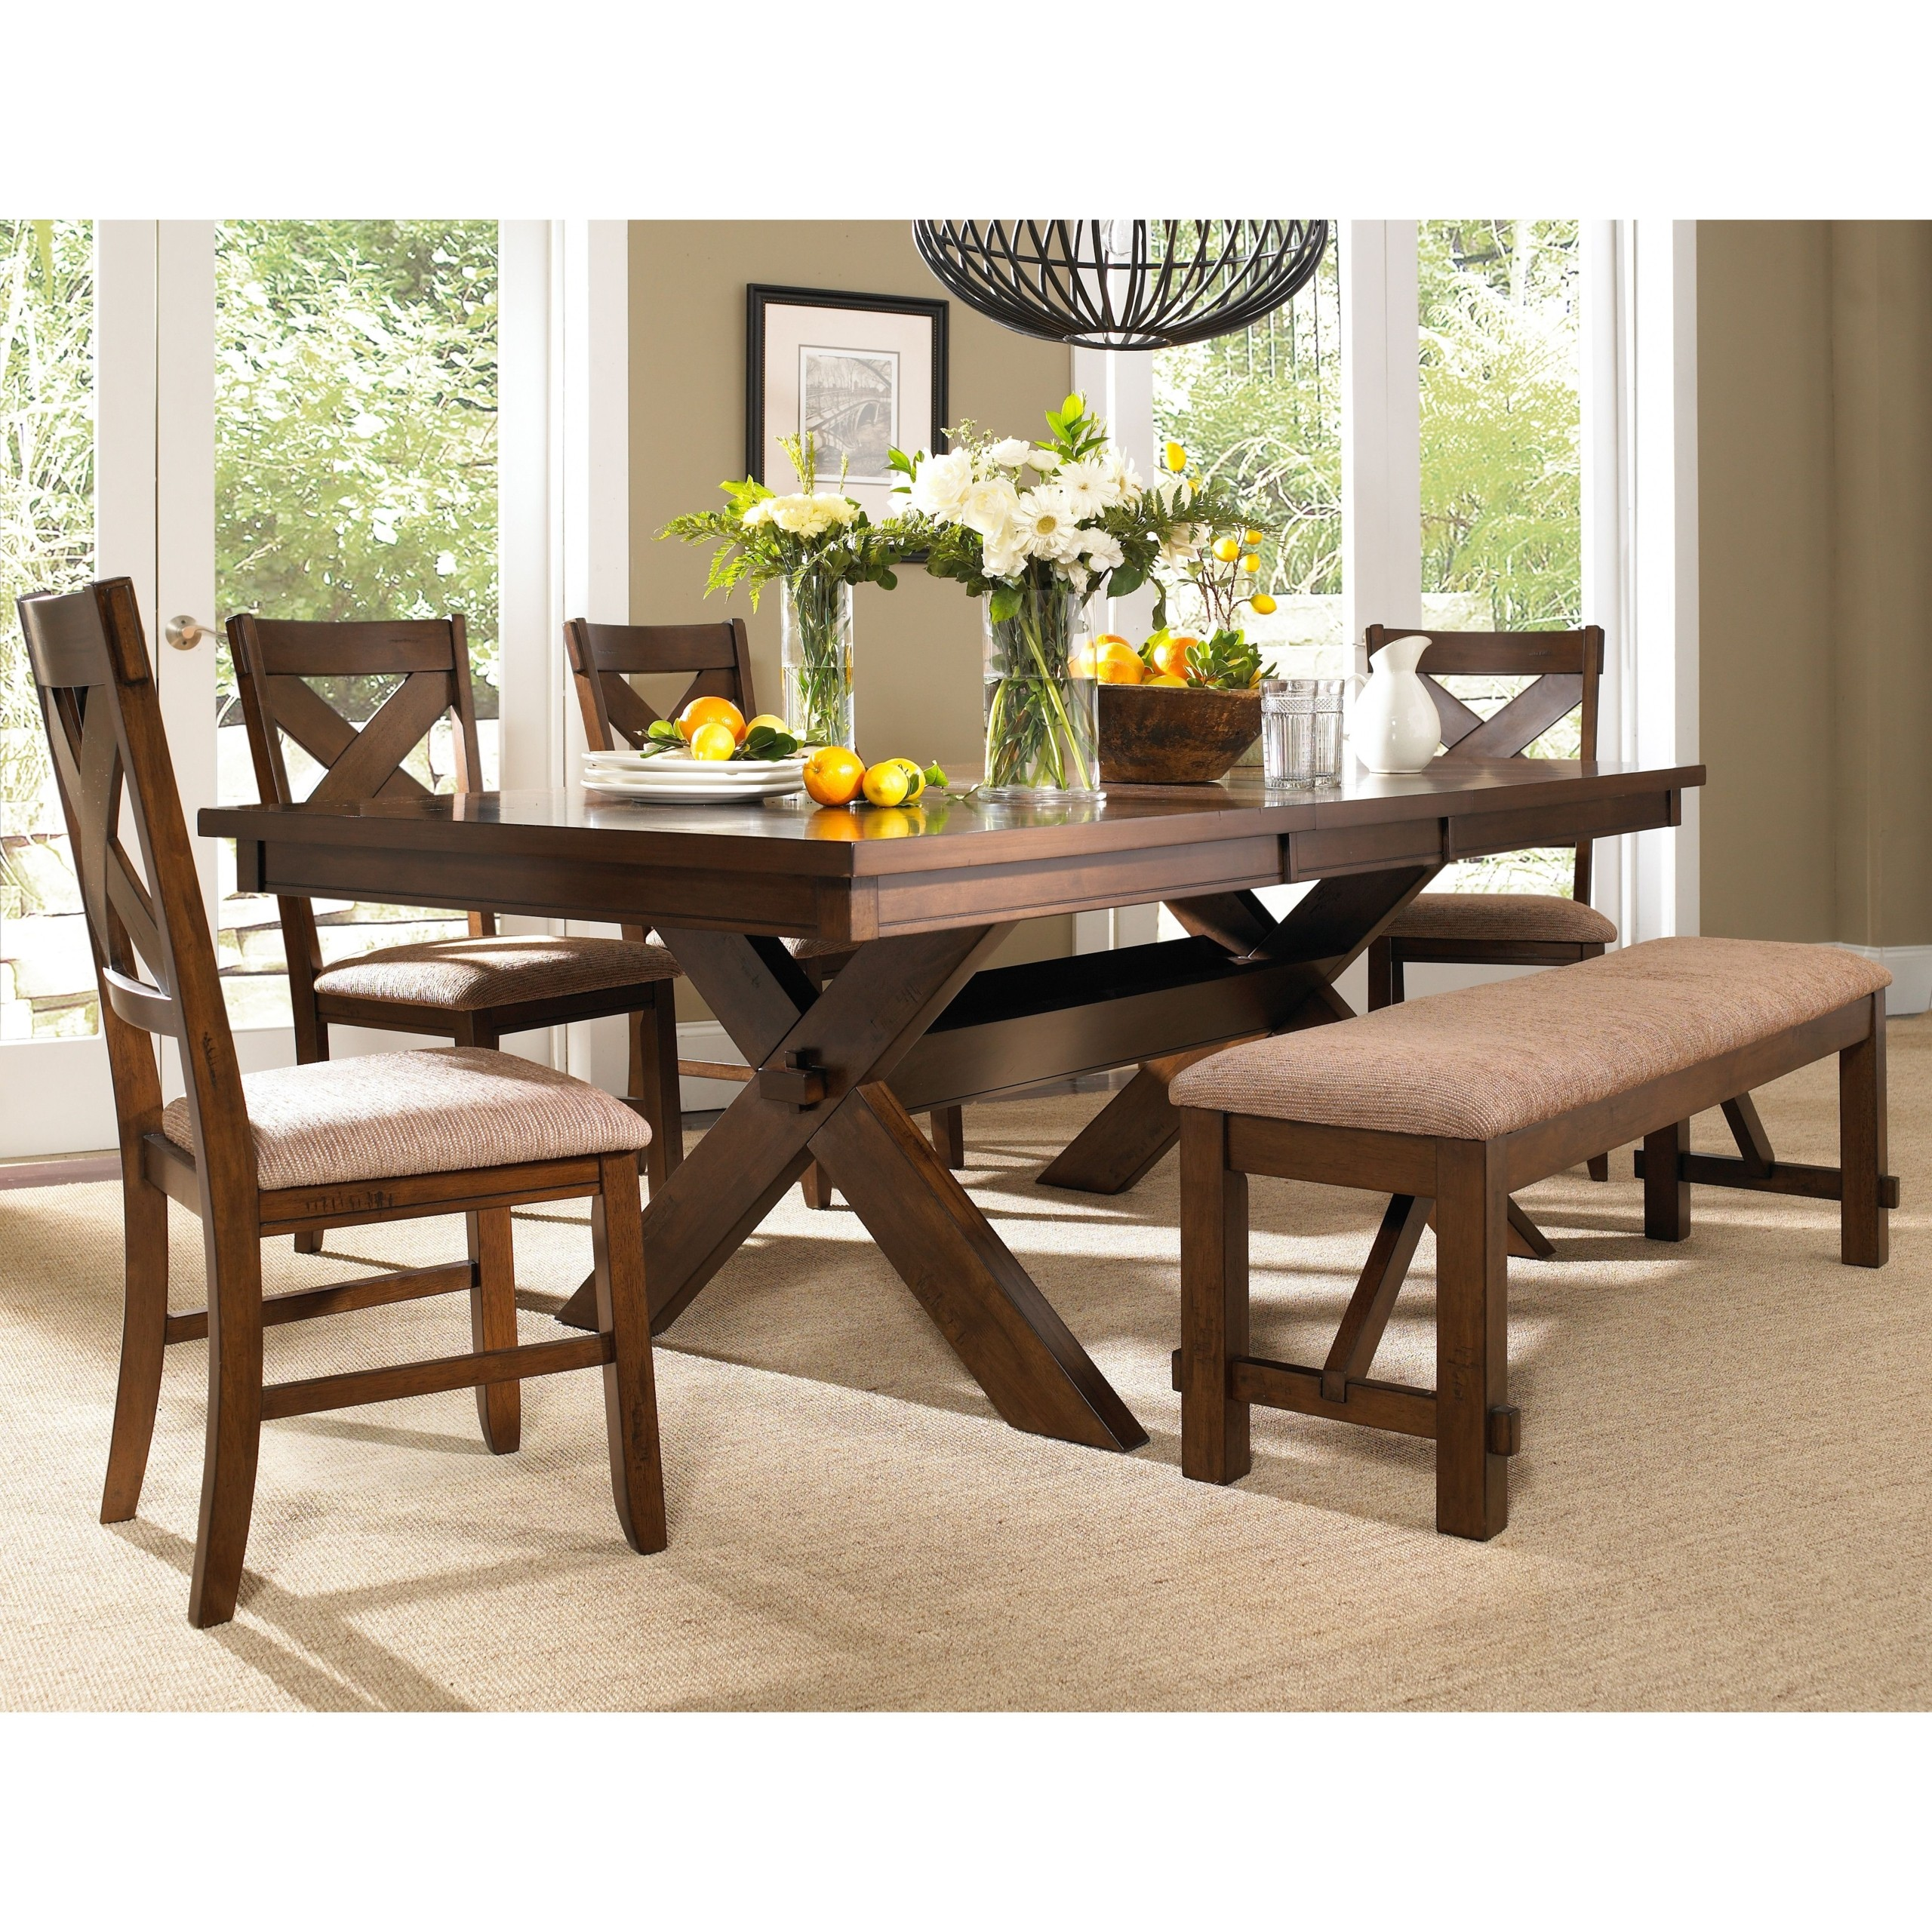 kitchen table with bench and chairs bath showrooms near me dining ideas on foter roundhill furniture 6 piece karven solid wood set 4